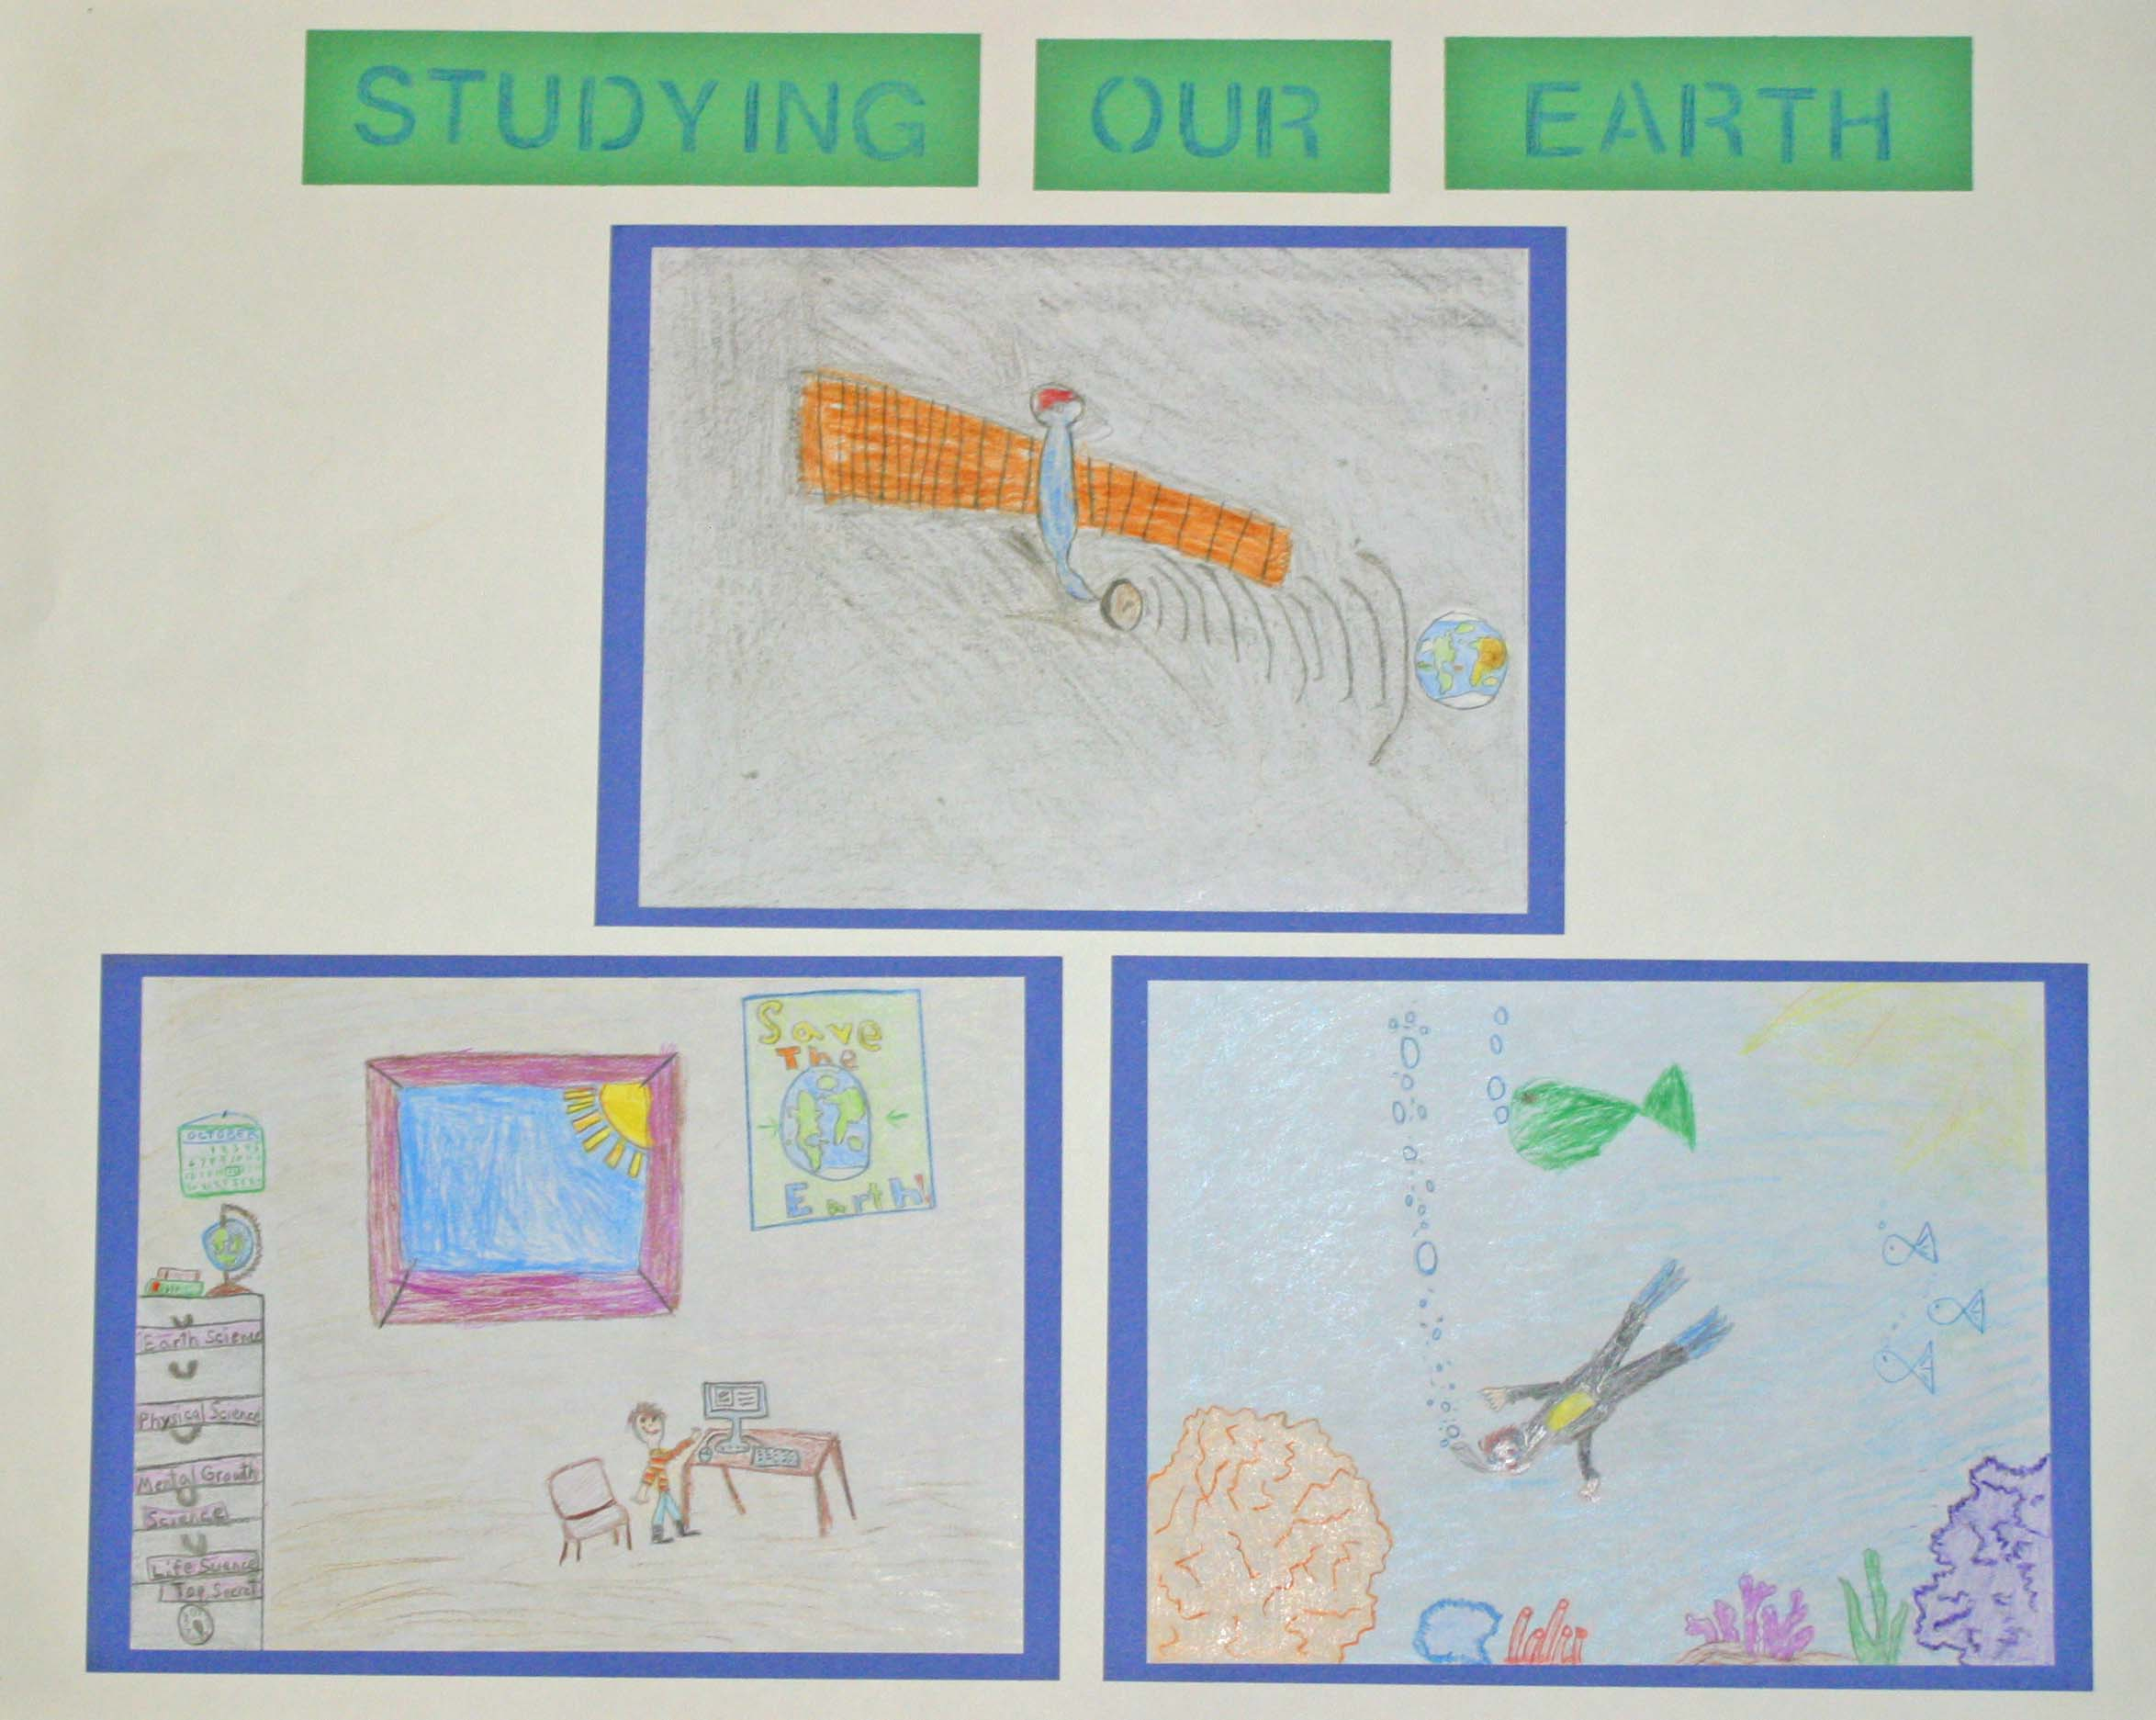 Earth science week essay contest